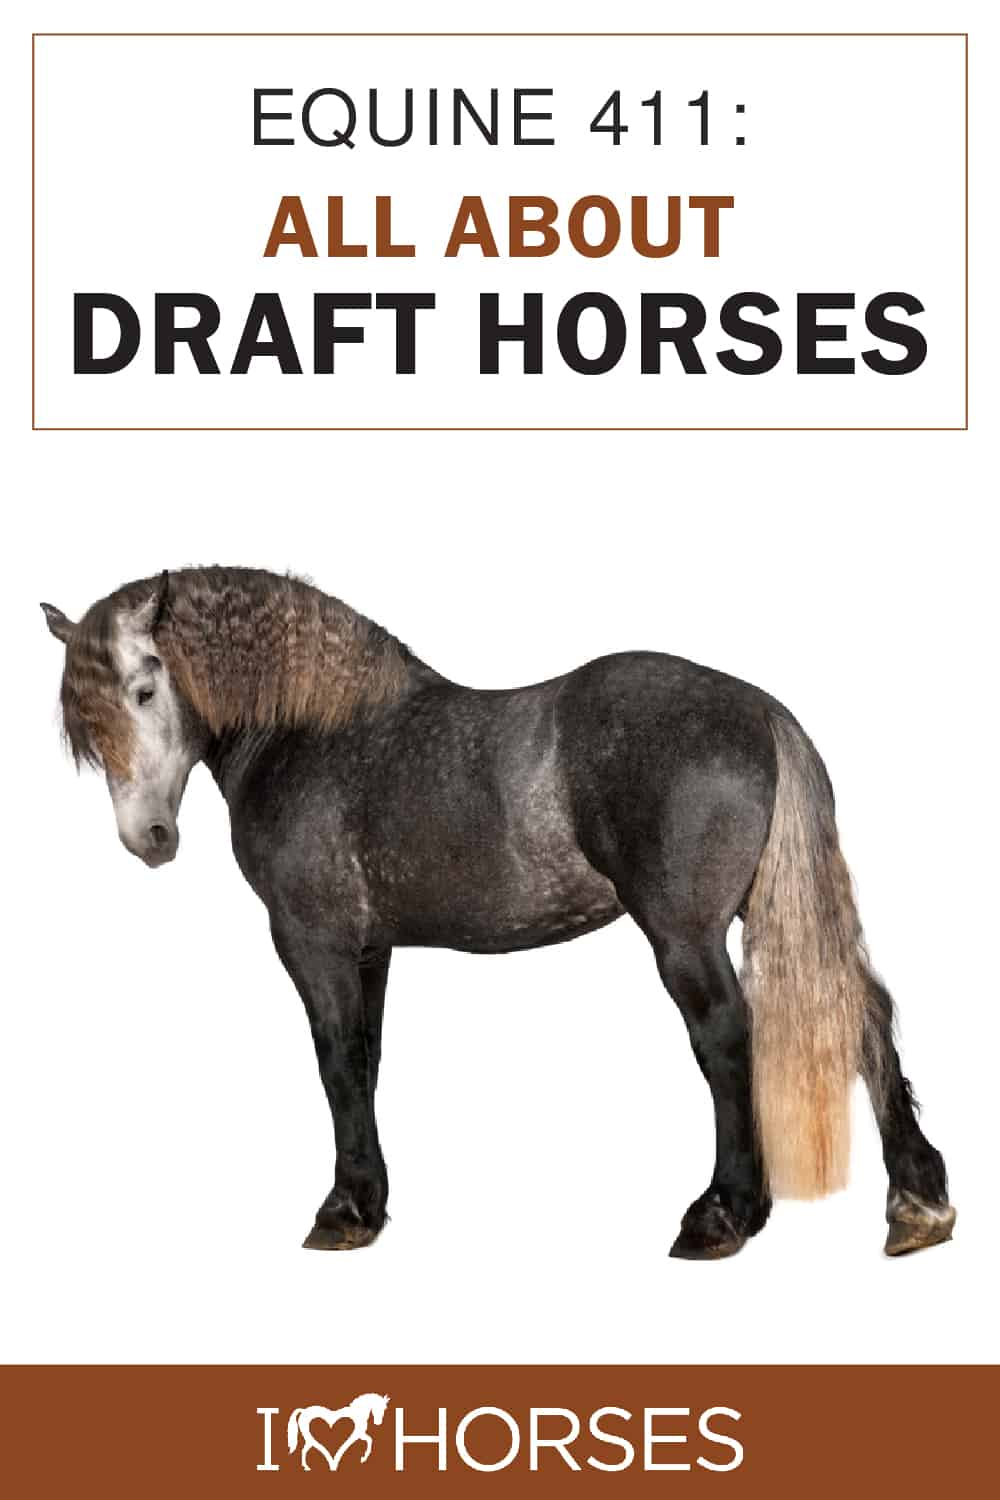 All About Draft Horses